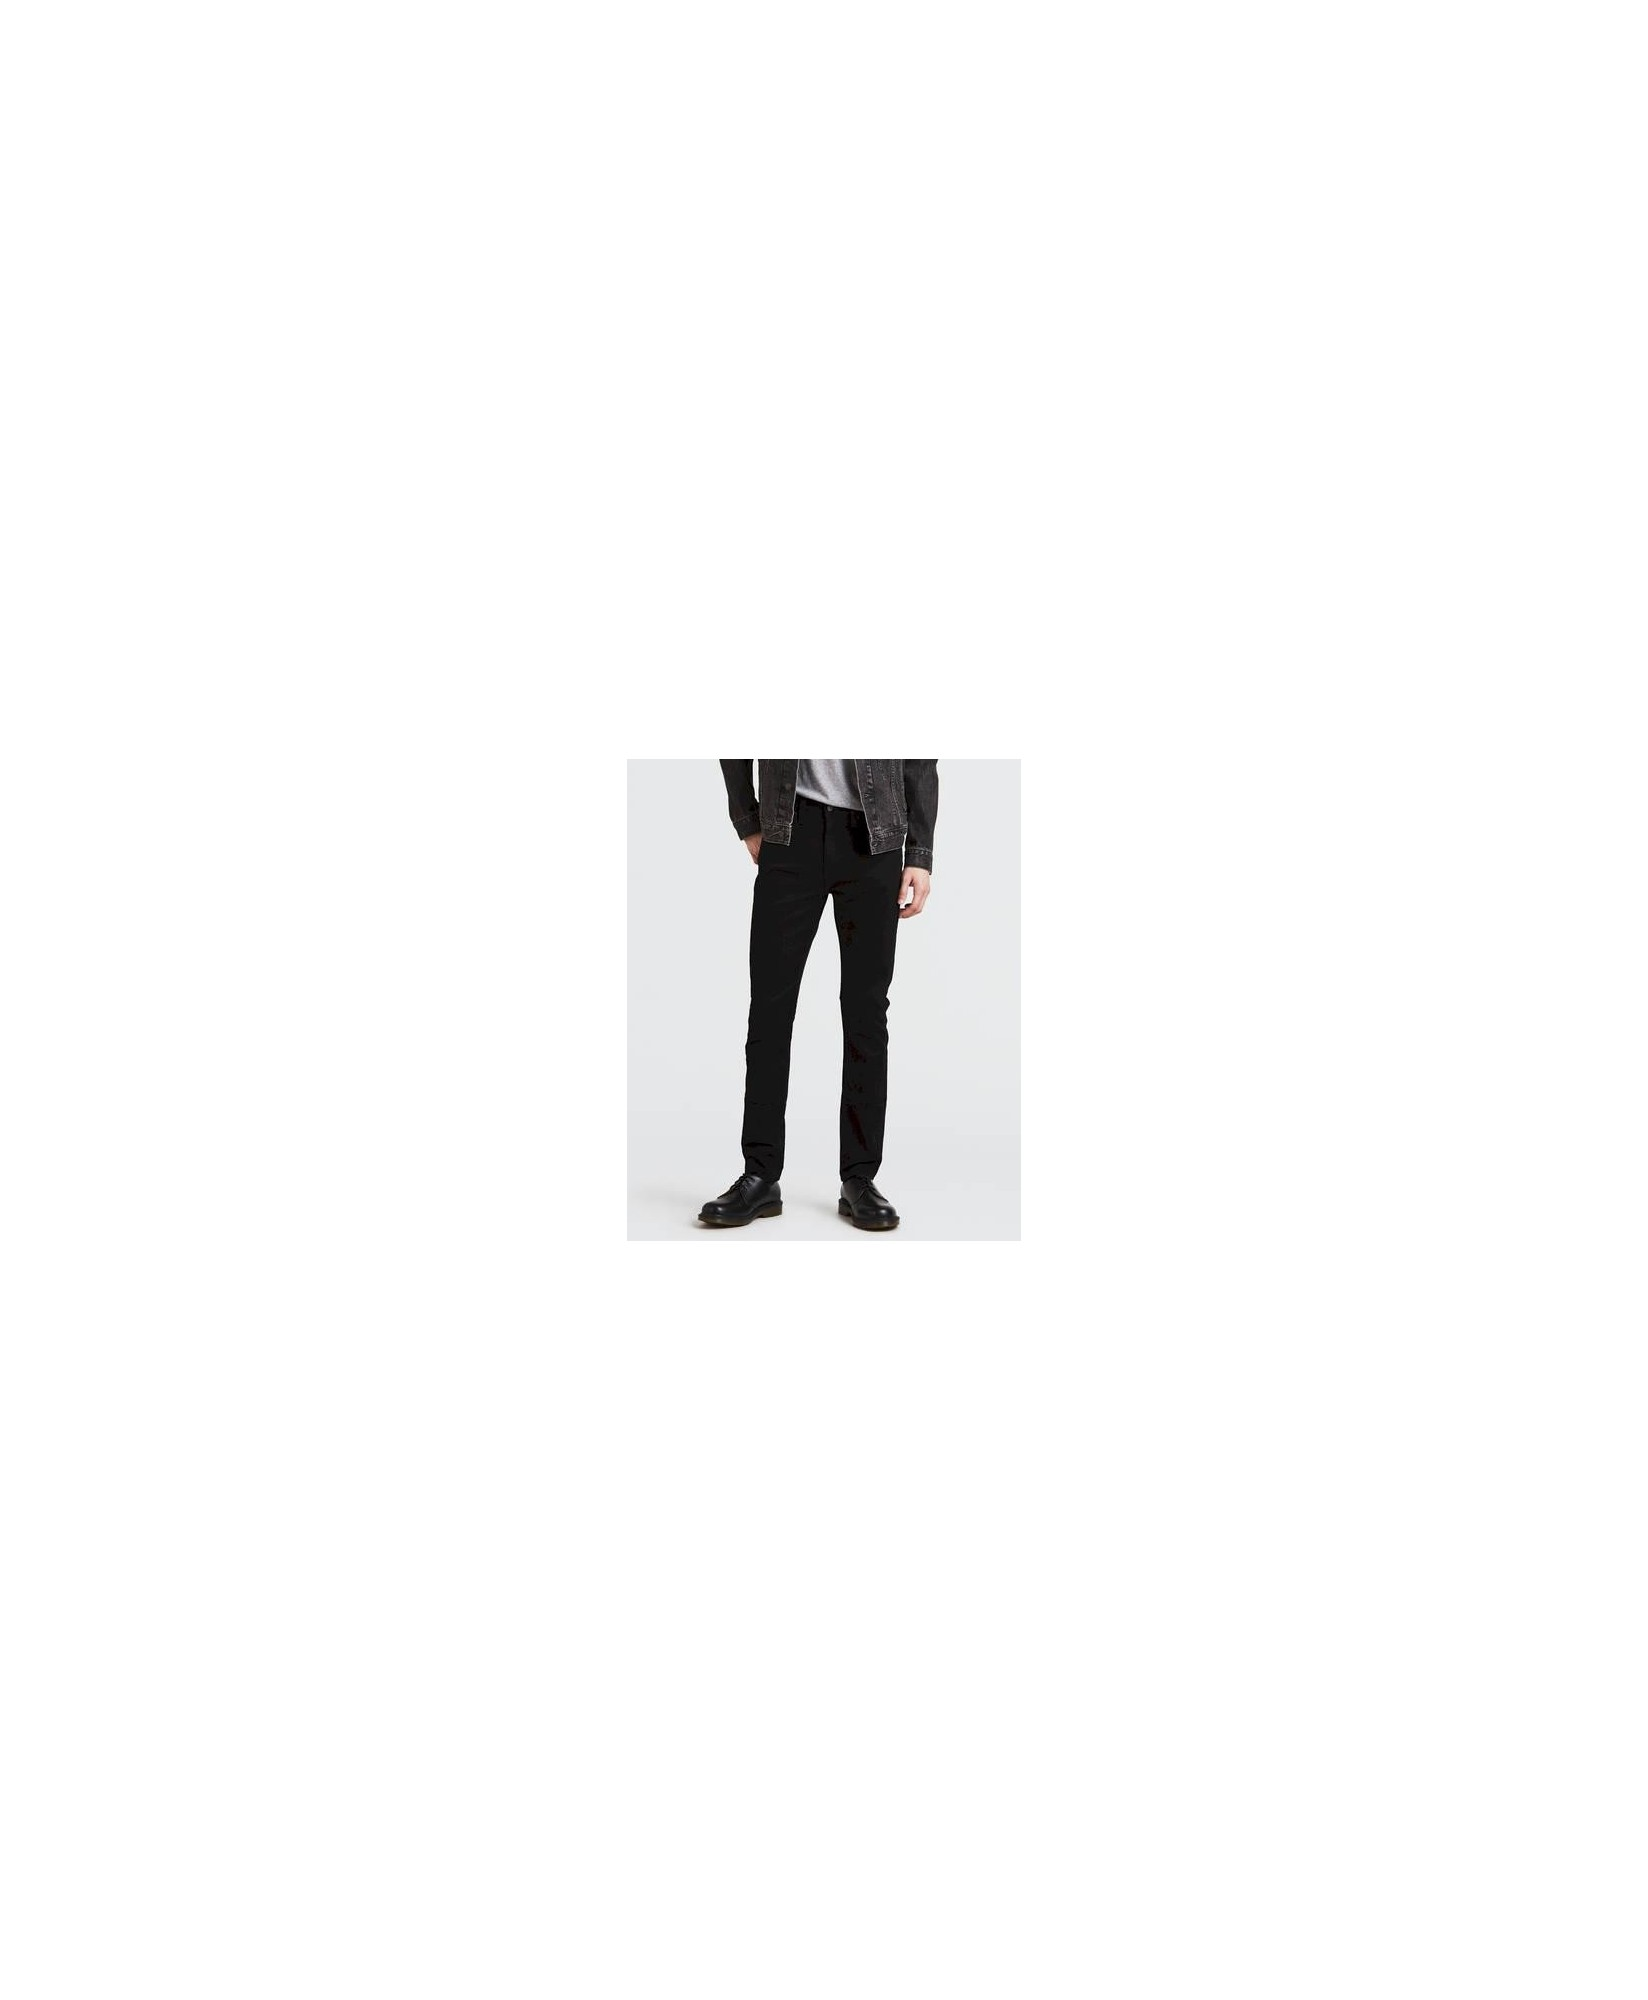 519™ EXTREME SKINNY FIT JEANS- ADVANCED STRETCH 519™ EXTREME SKINNY FIT JEANS- ADVANCED STRETCH